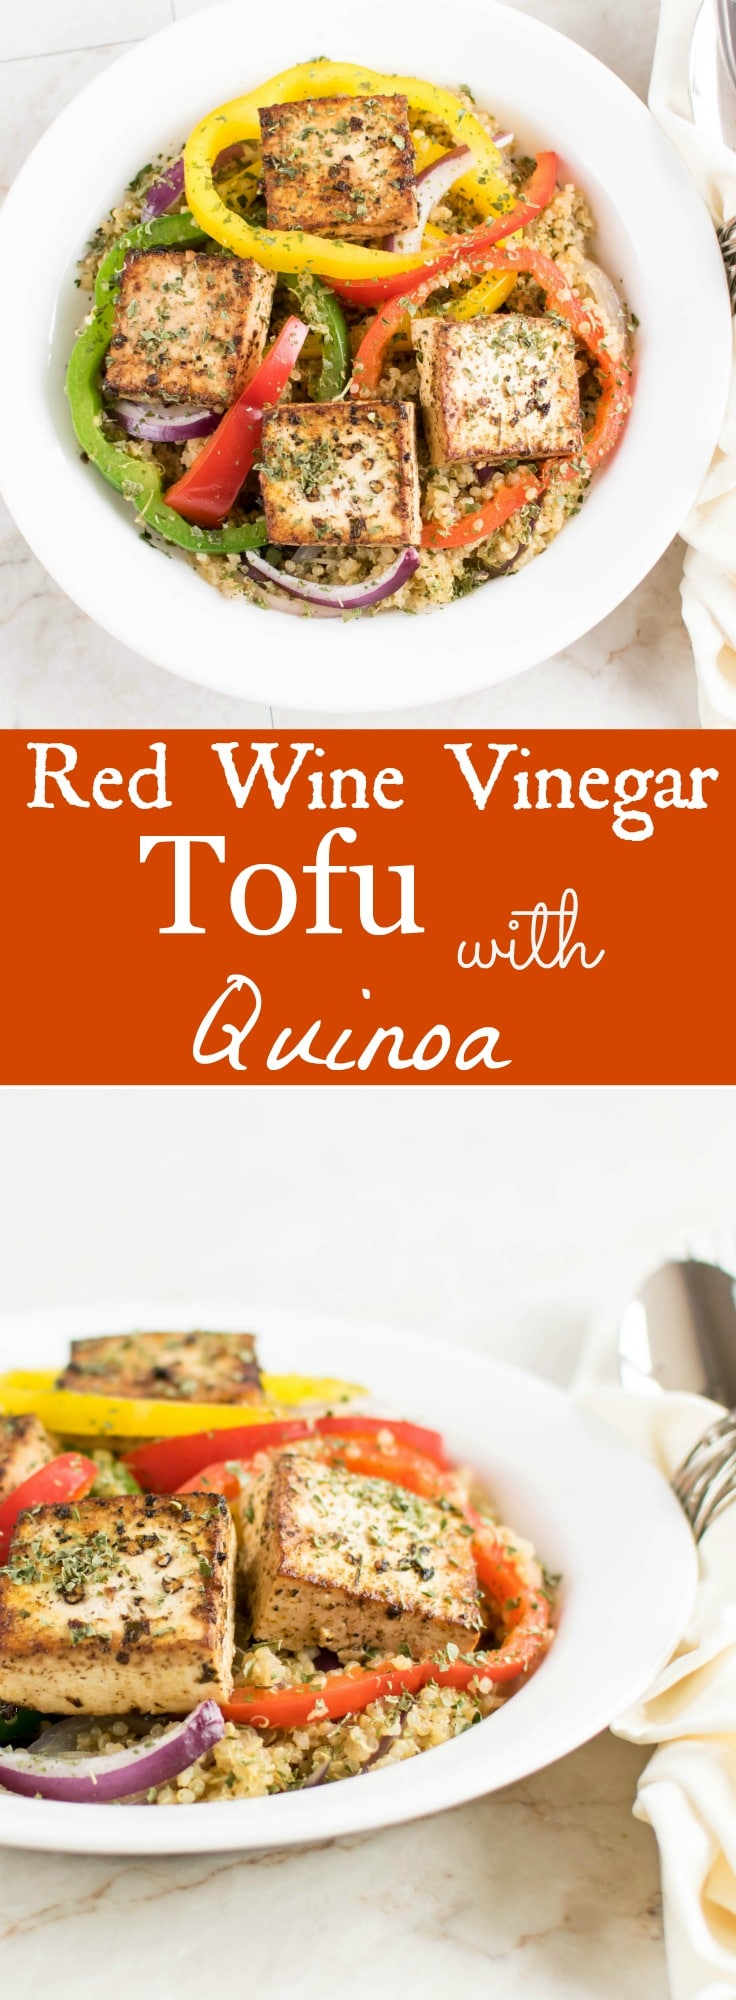 Red Wine Vinegar Tofu with Quinoa | 30 minutes vegan and gluten free ...